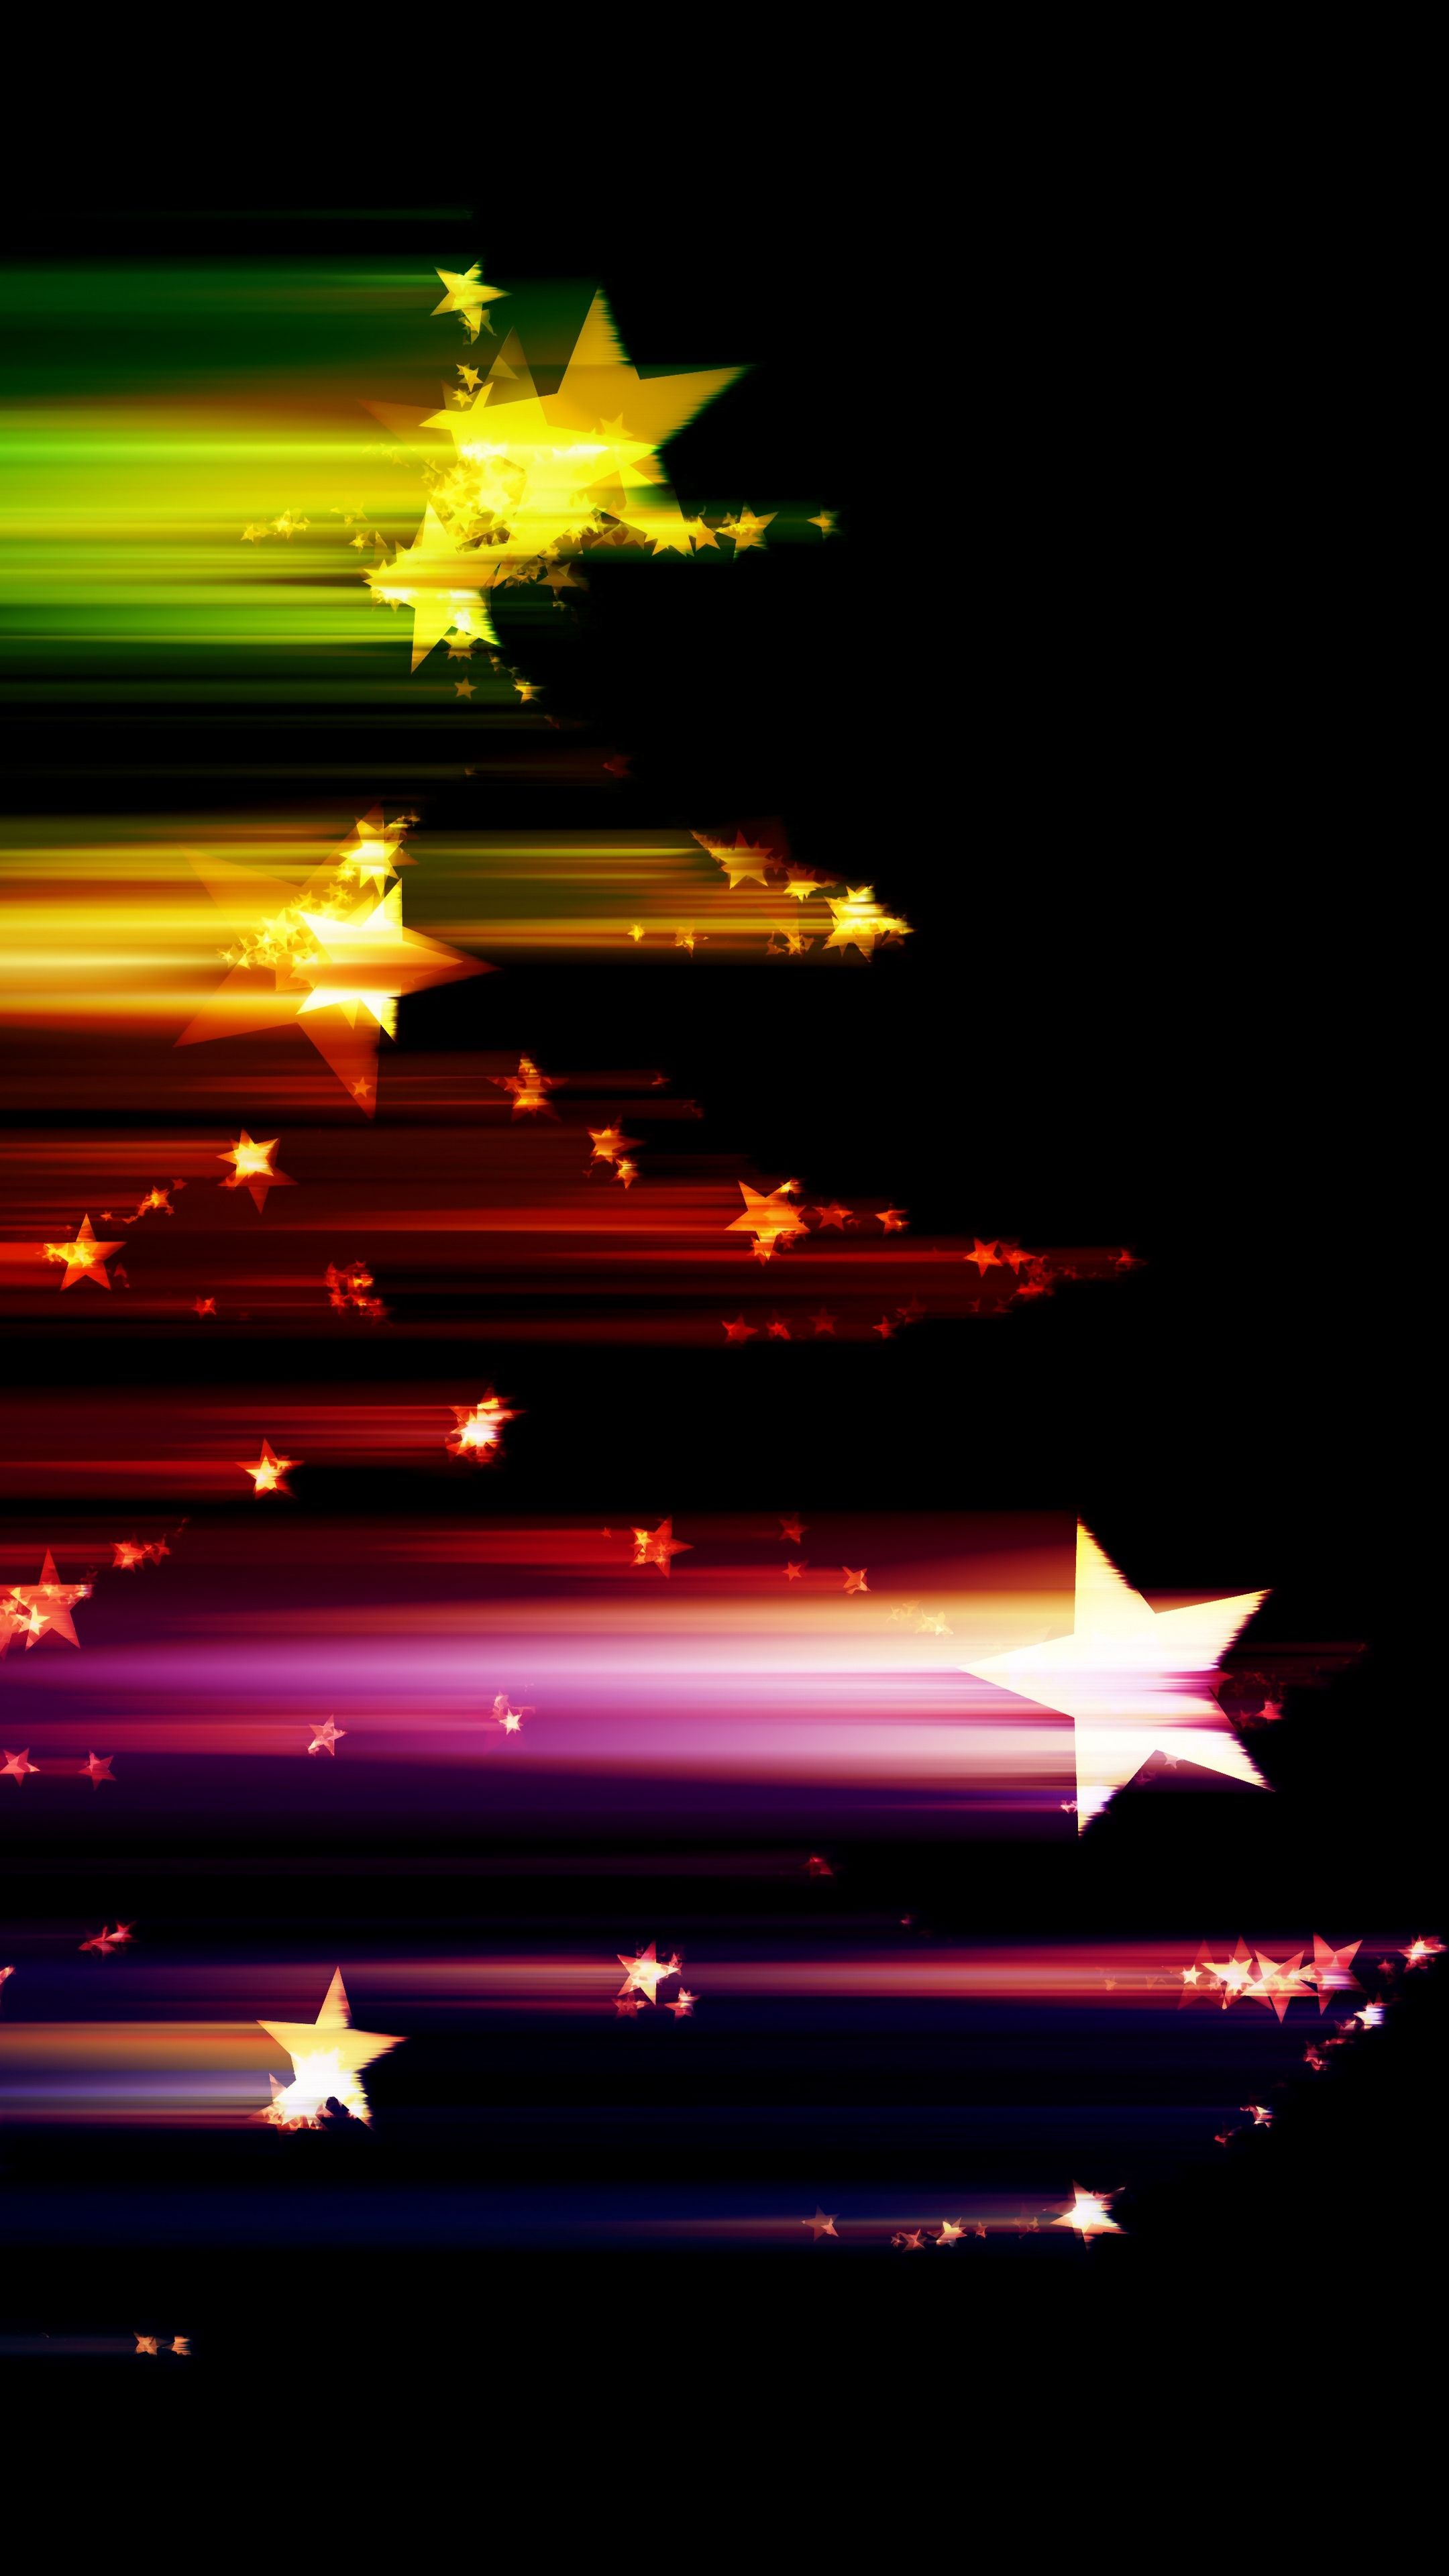 Abstract Stars Shine Rays Wallpapers Hd 4k Background For Android Infinity Wallpaper Wallpaper Abstract